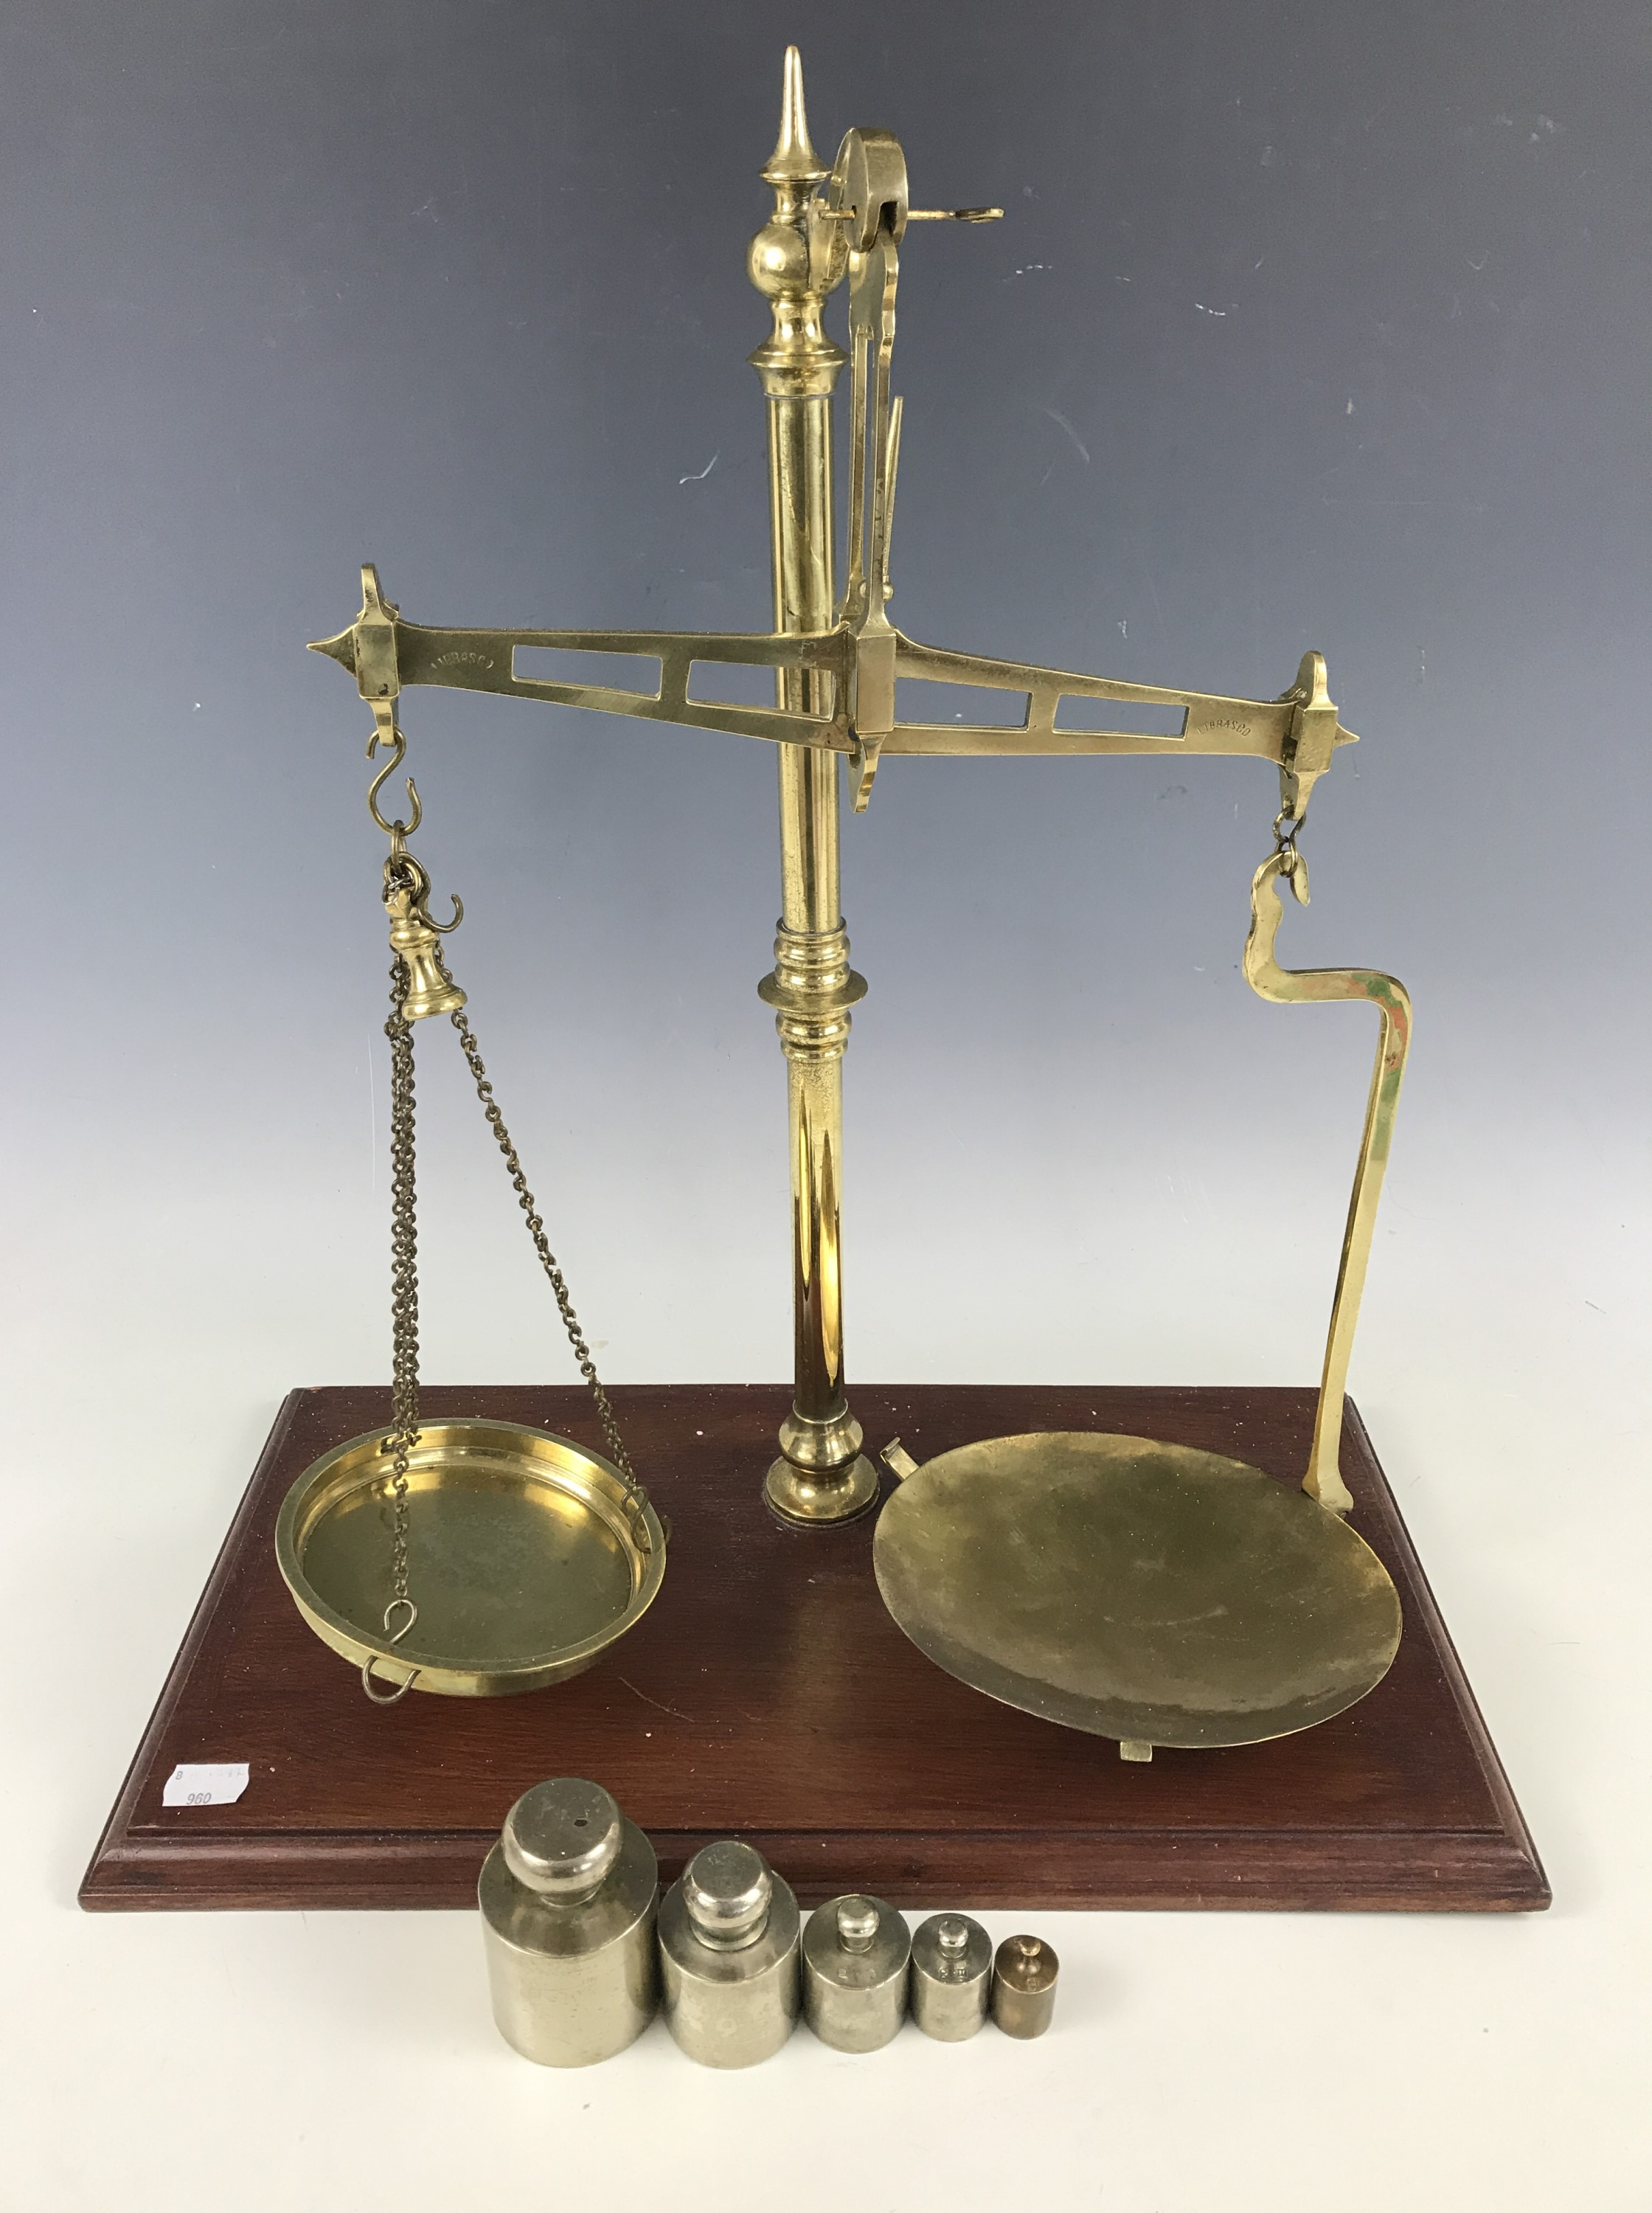 Lot 28 - A set of early 20th Century Librasco brass counter-top beam scales, together with a set of metric ""